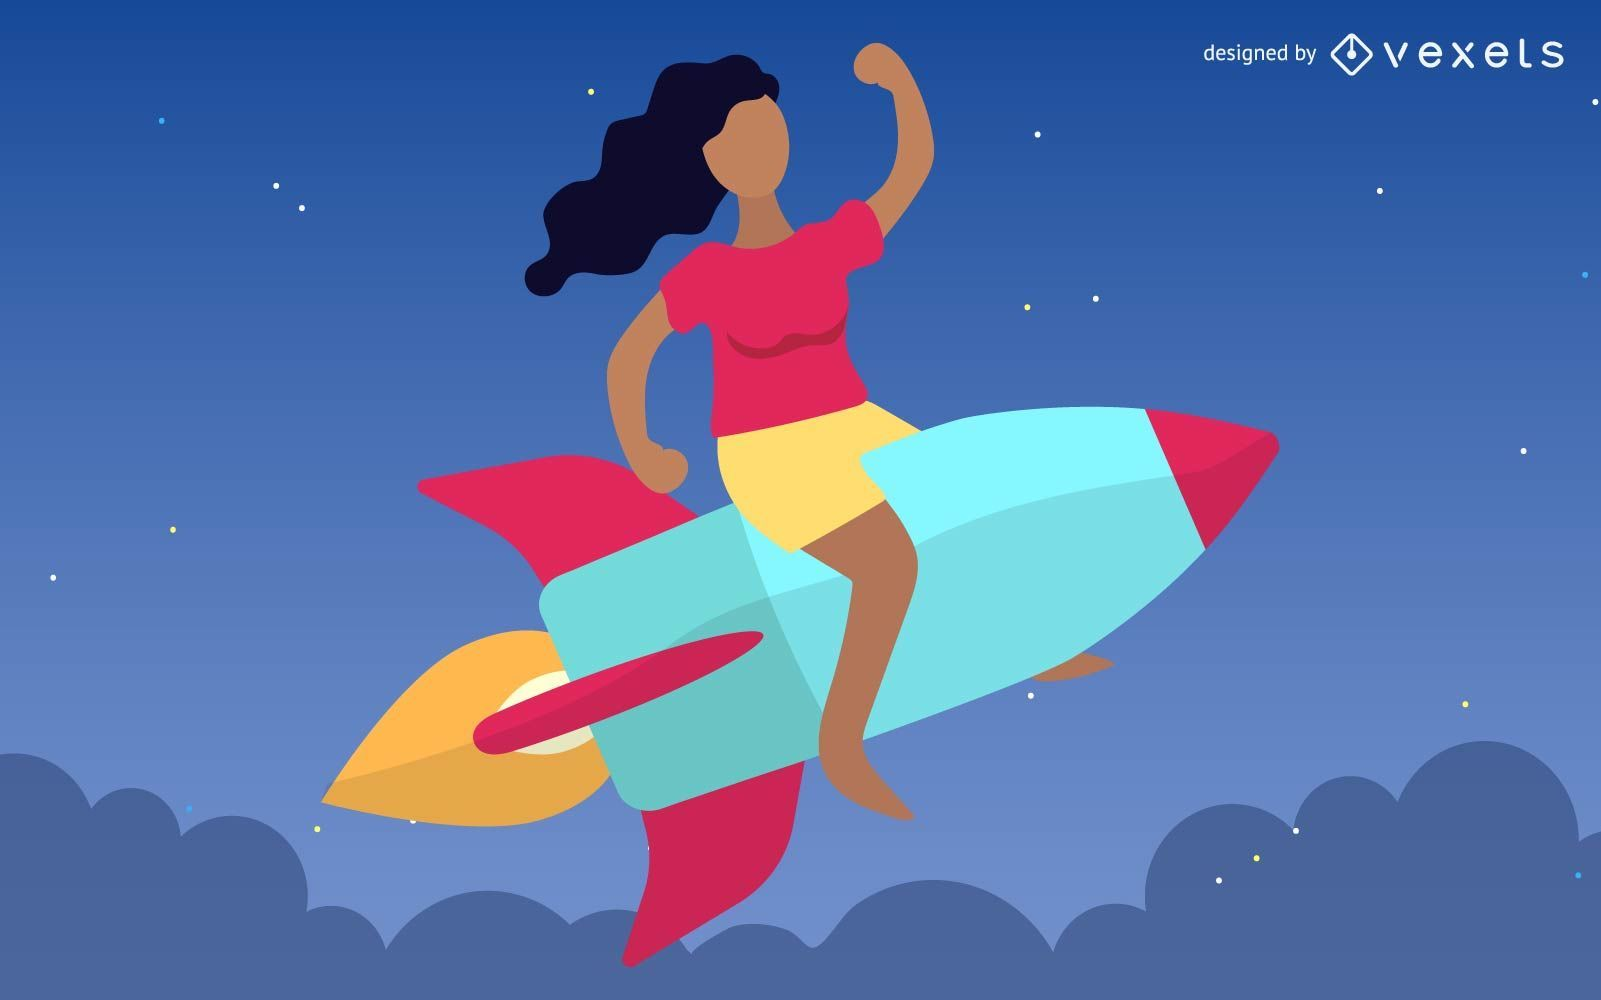 Girl riding rocket with missiles